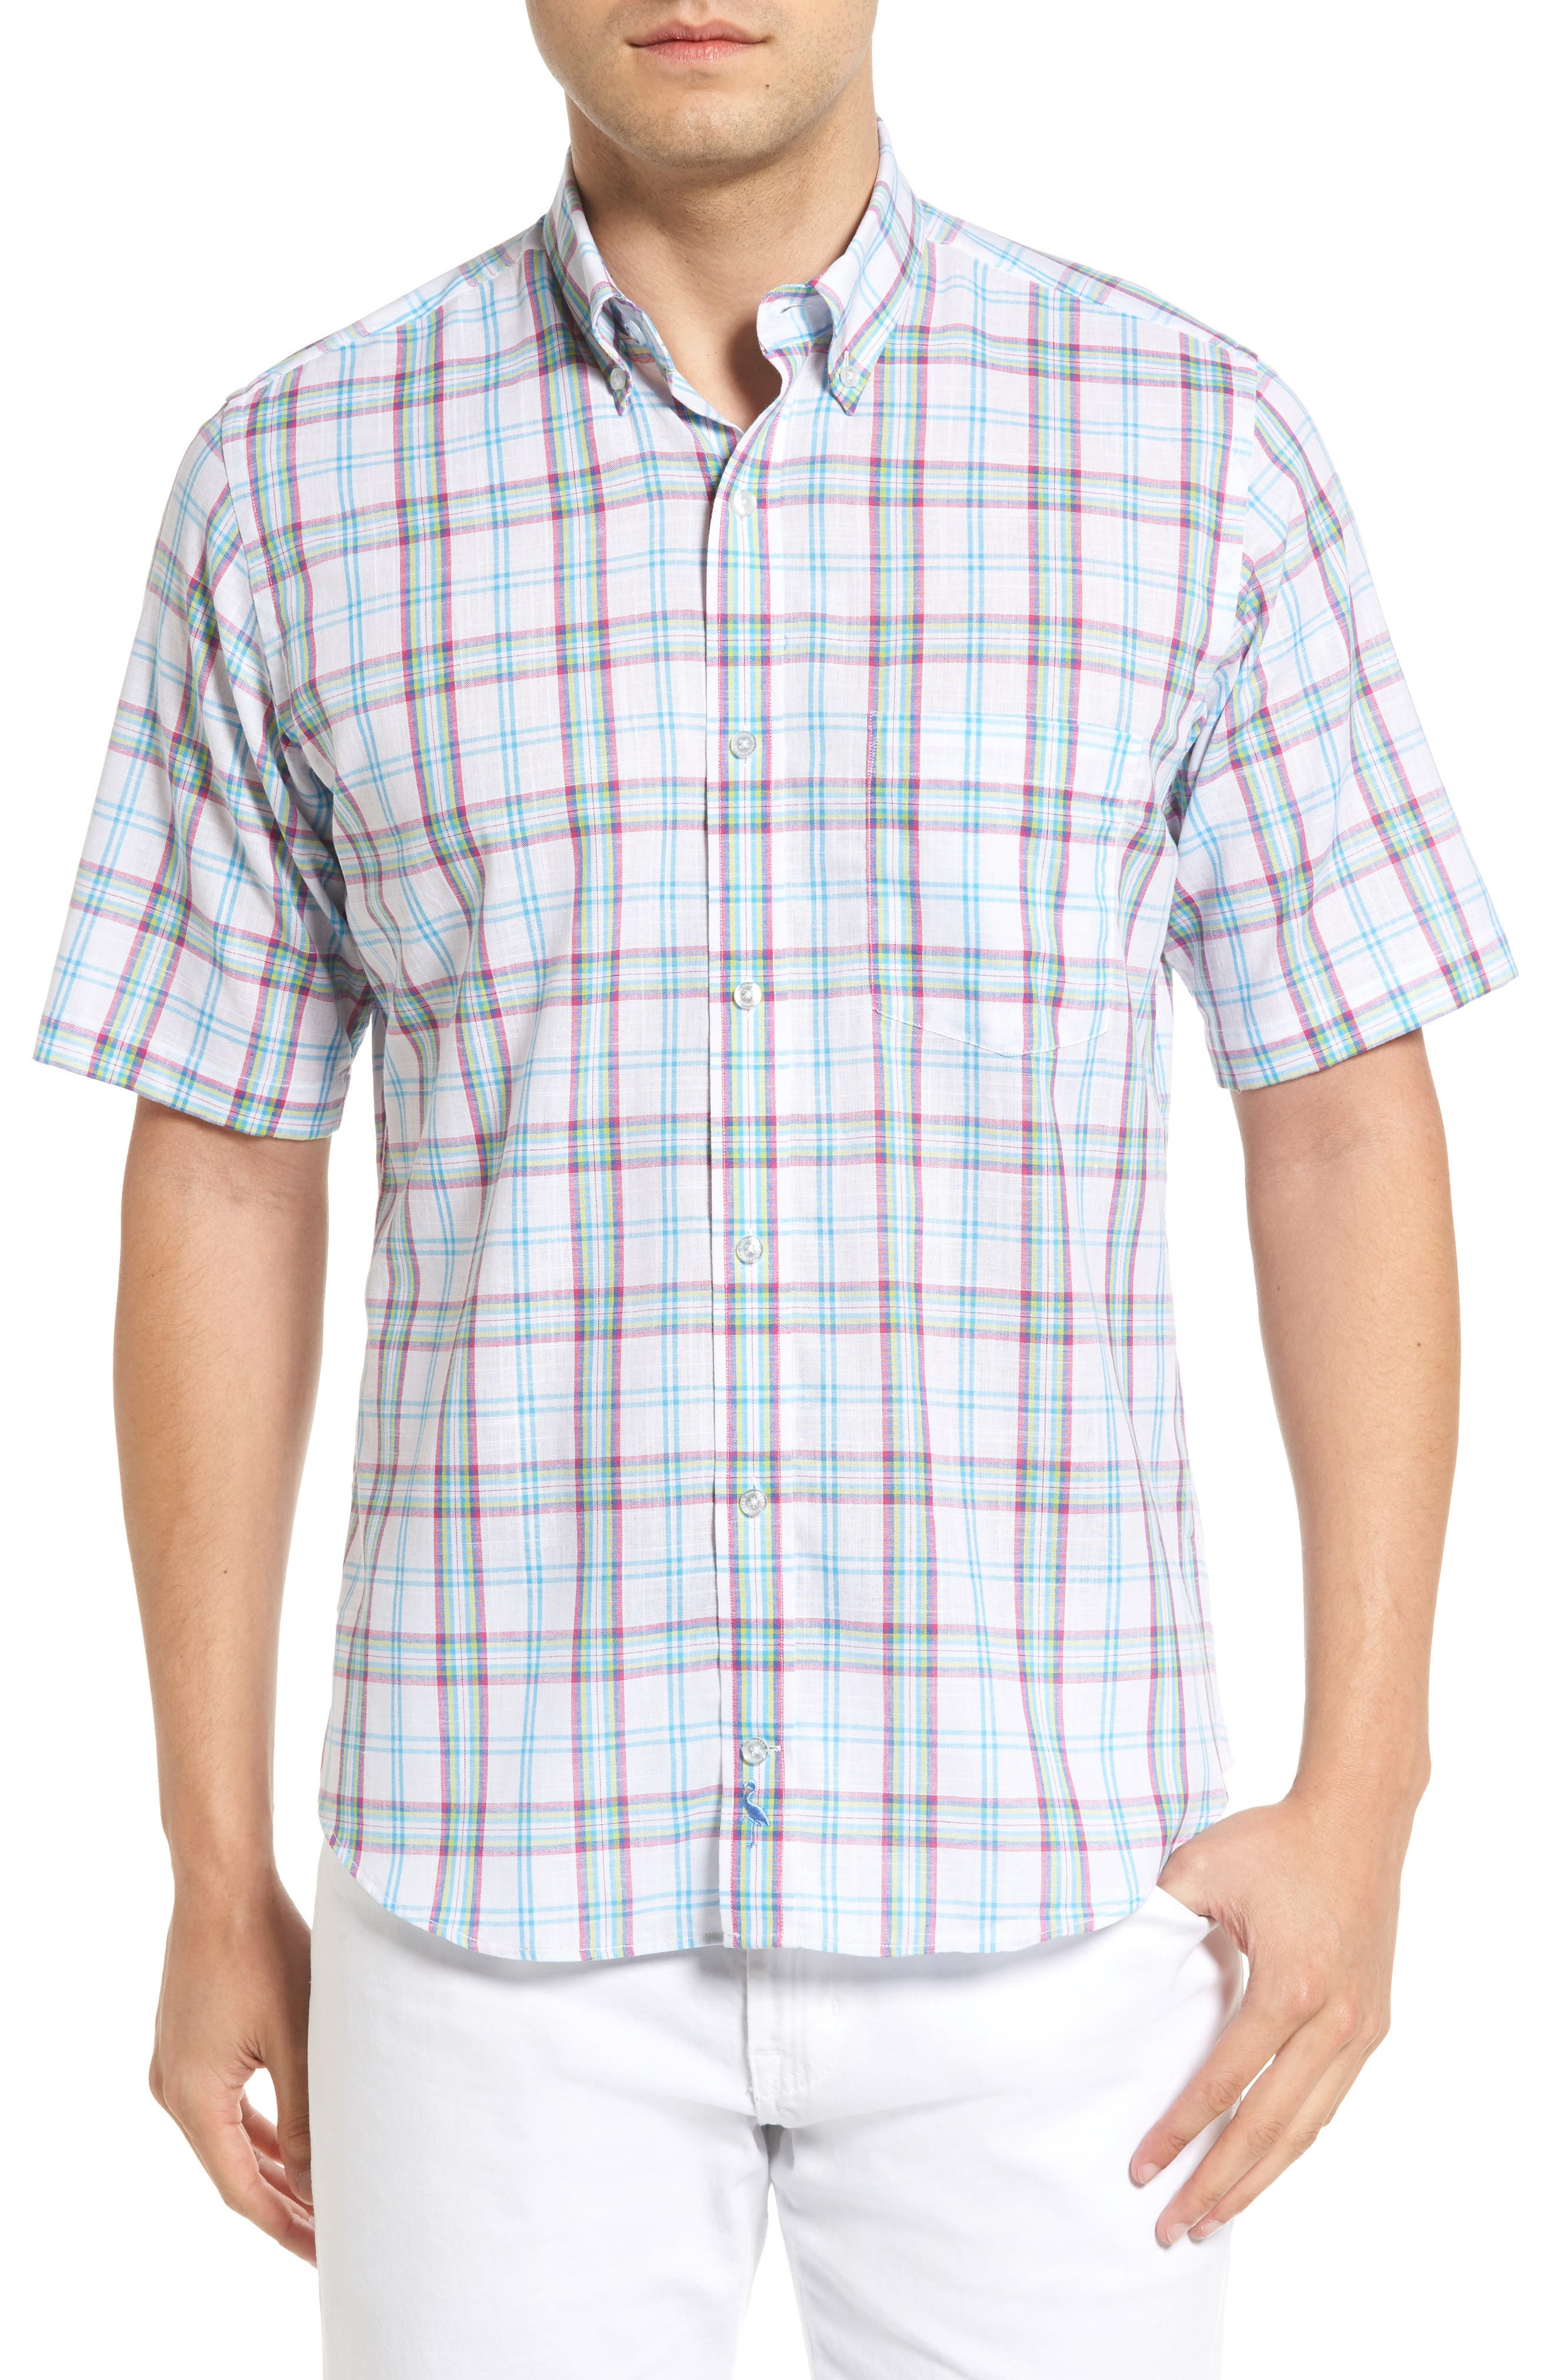 Alternate Image 1 Selected - Tailorbyrd Monterey Regular Fit Short Sleeve Plaid Sport Shirt